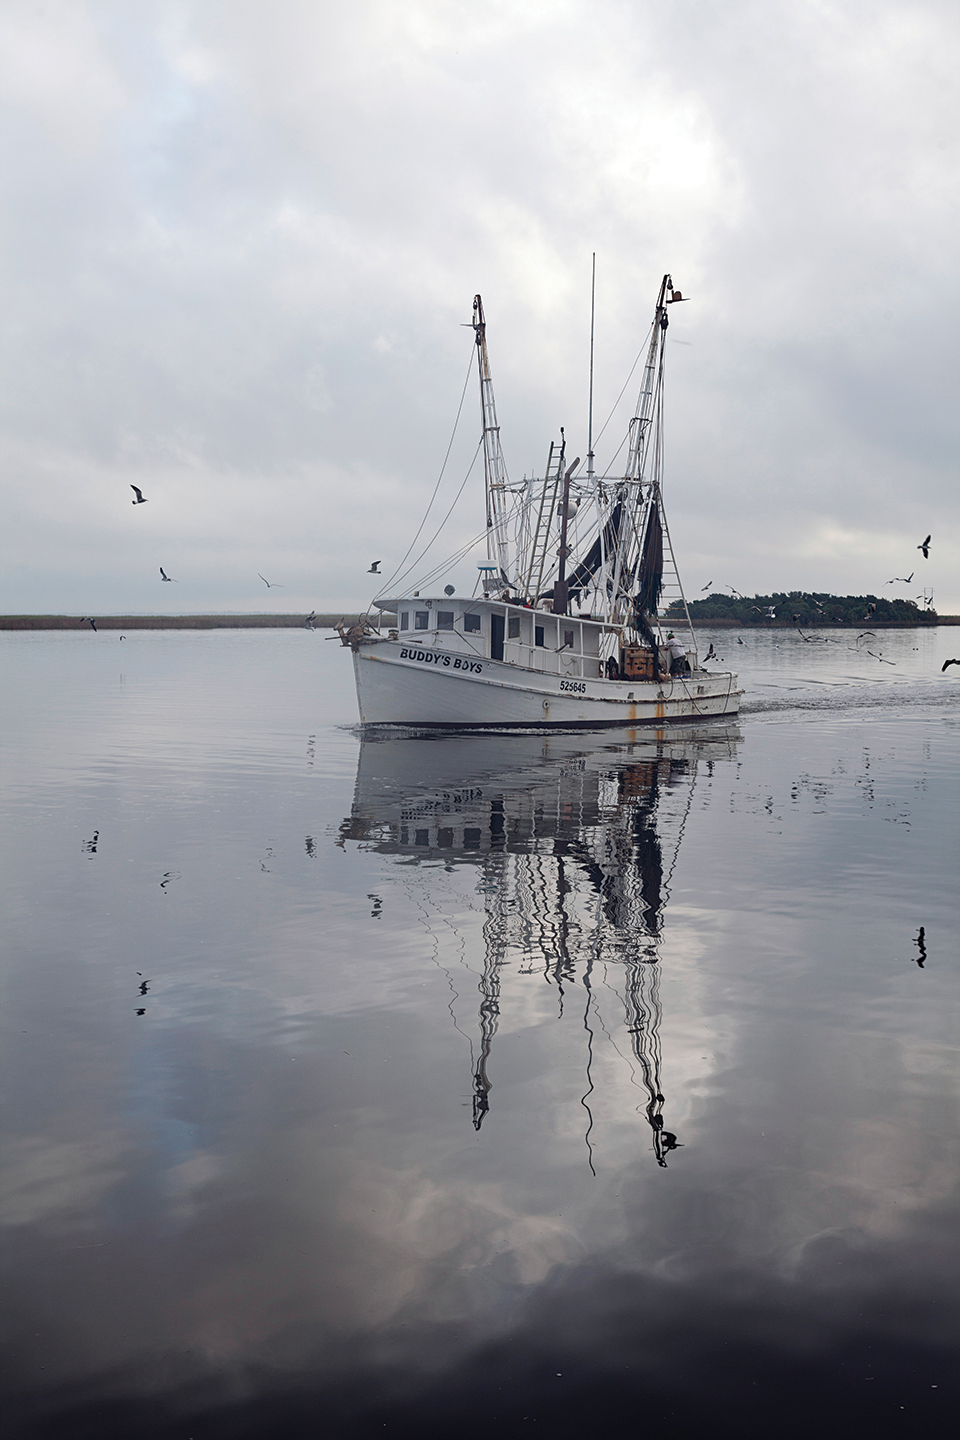 A shrimp boat on the Apalachicola River (photo by Jeremiah Stanley)